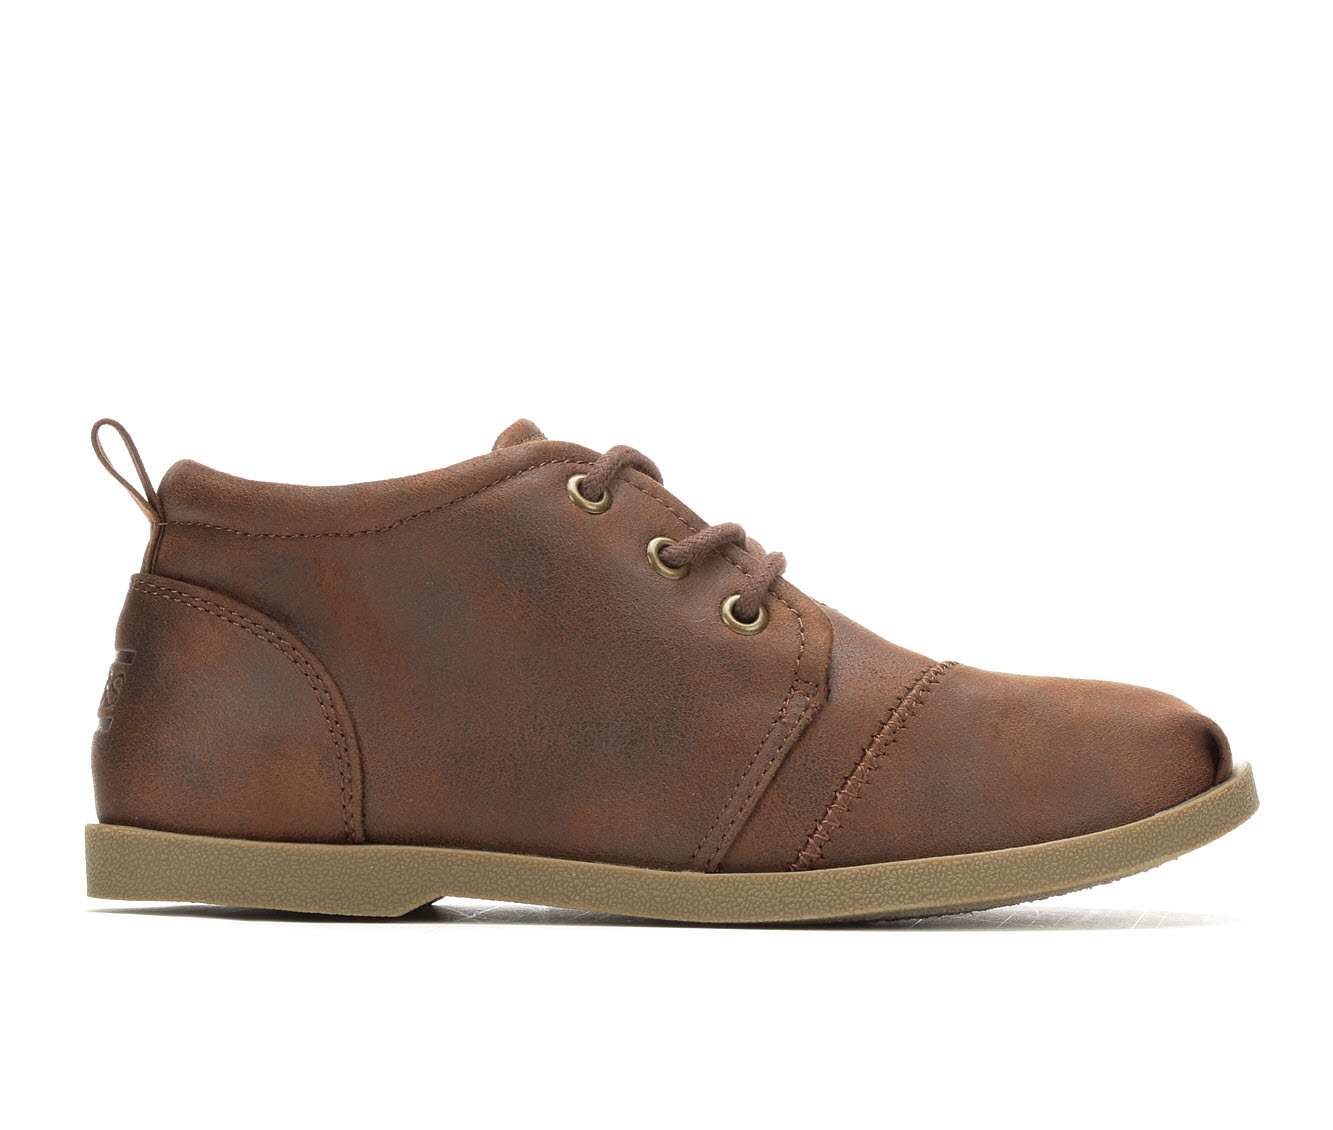 BOBS Drifting Women's Shoe (Brown Faux Leather)